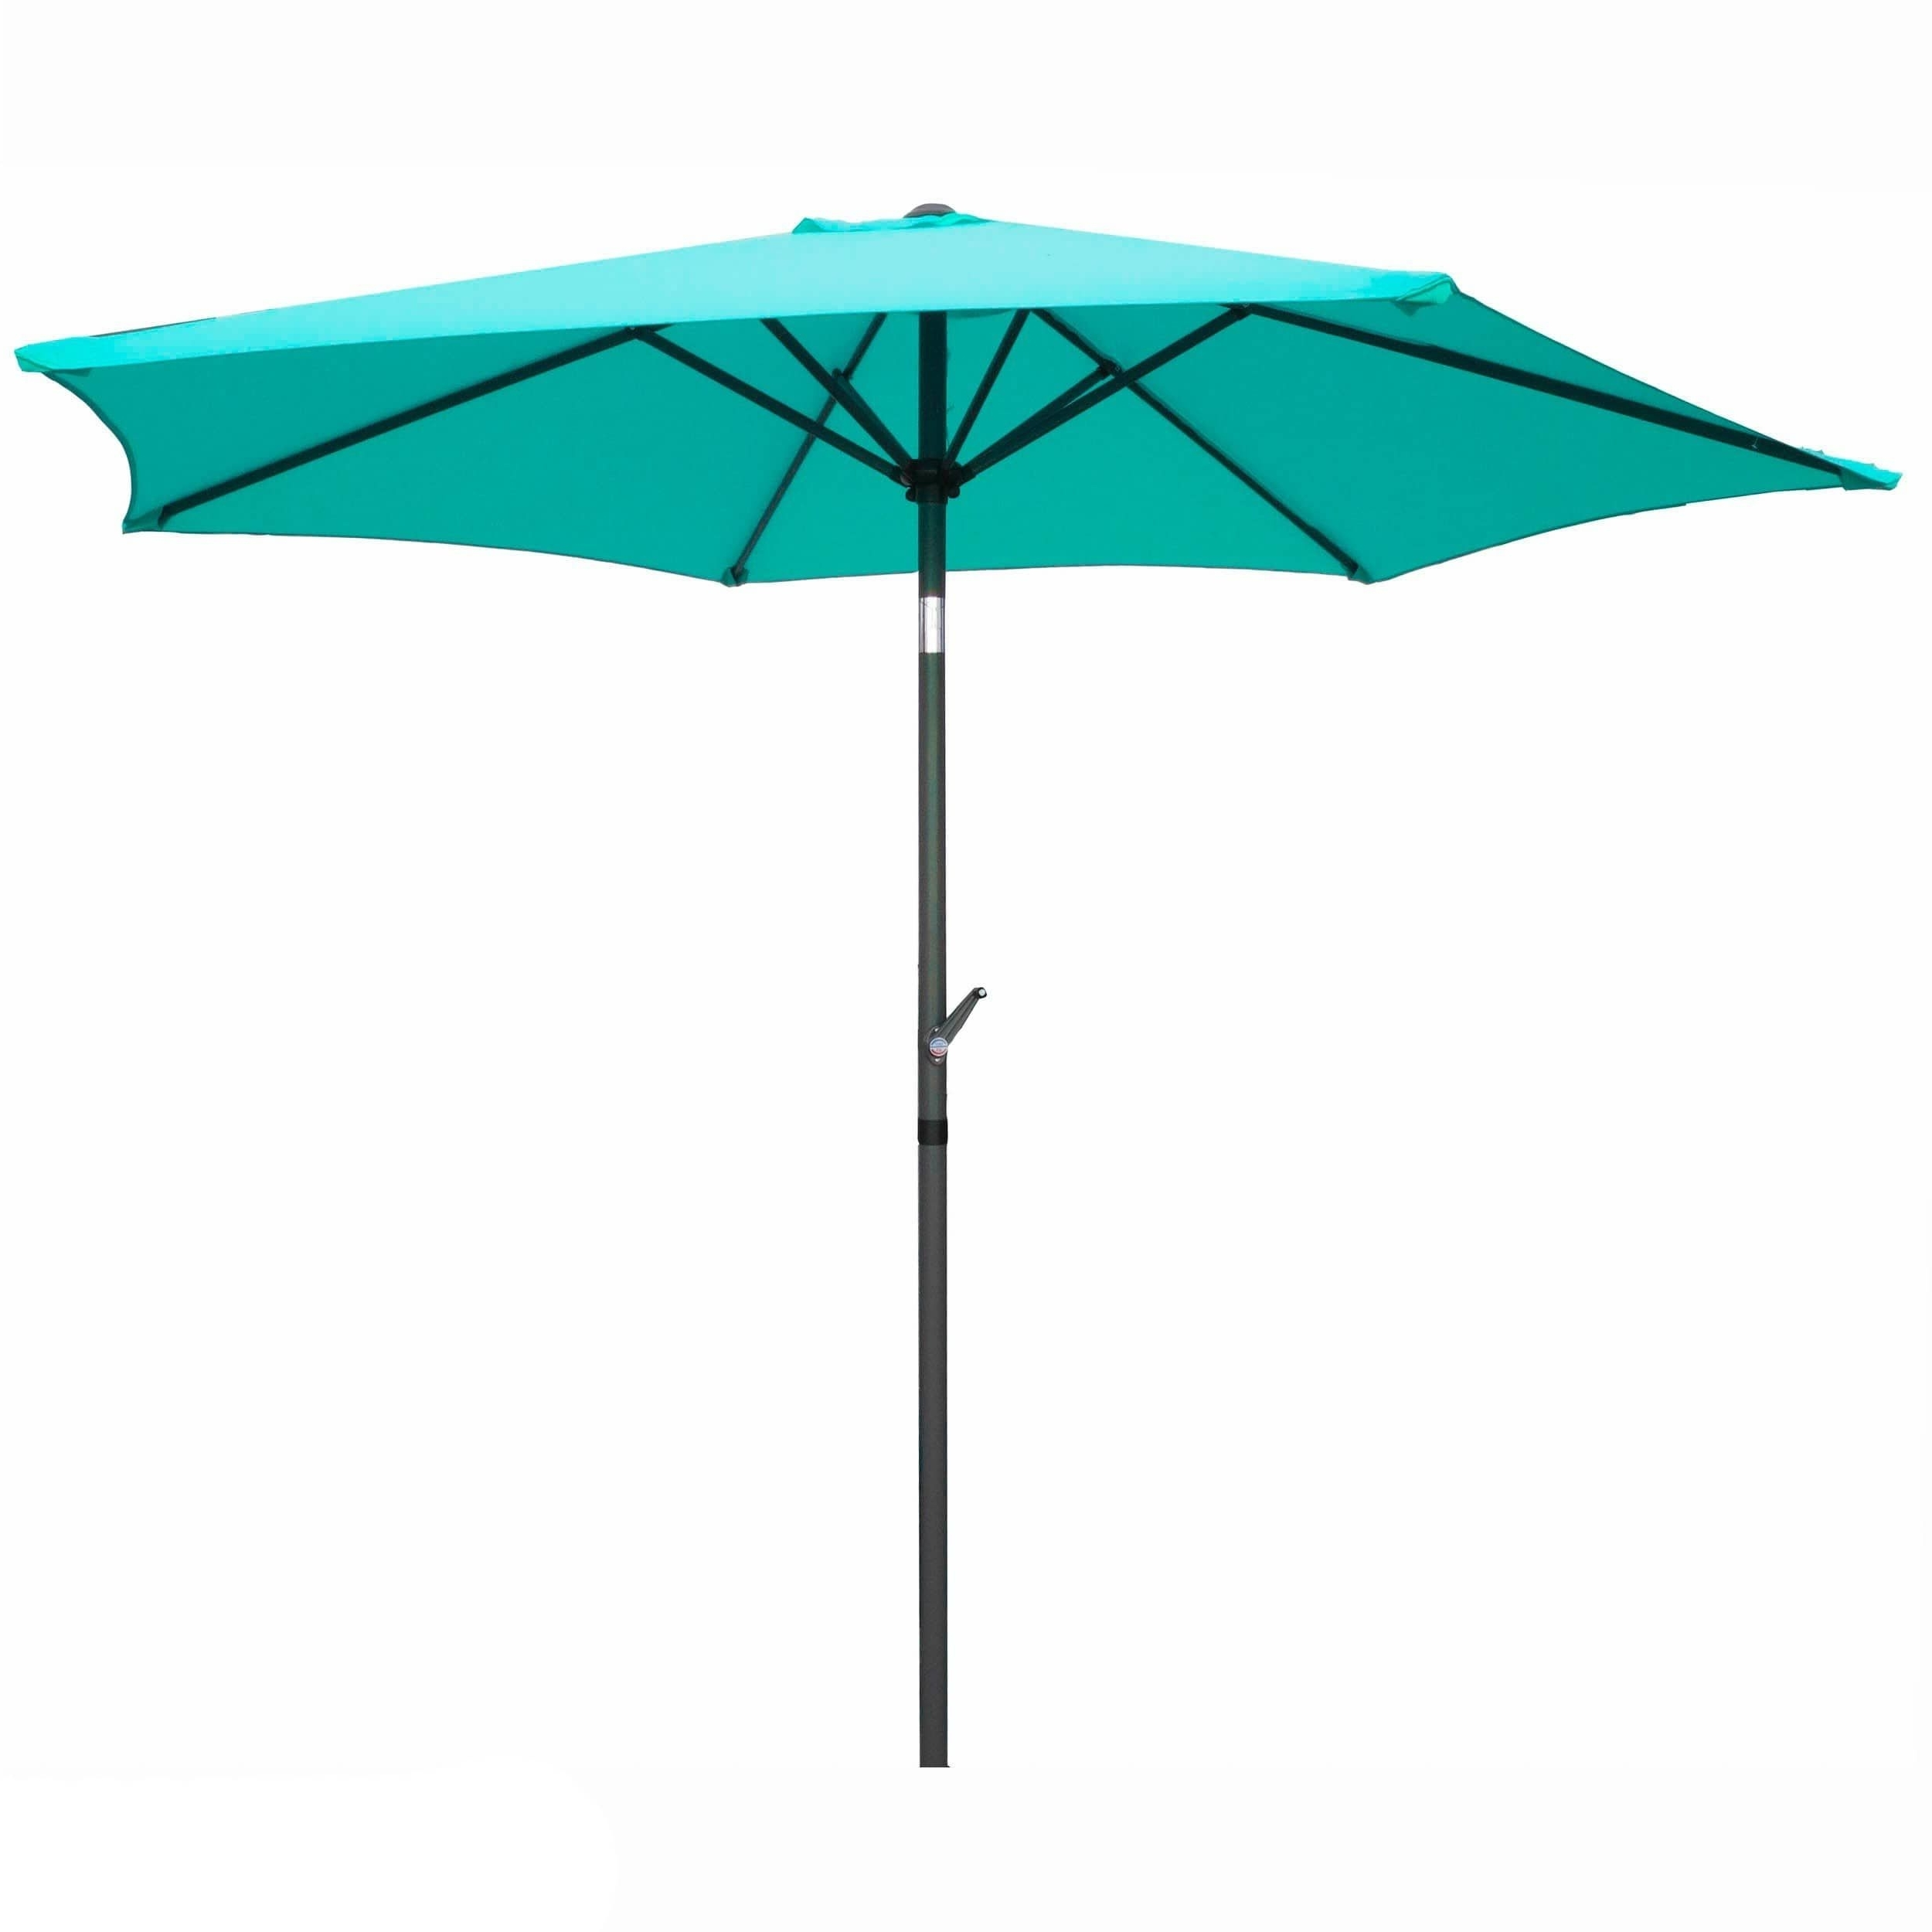 Yescom Patio Umbrellas Regarding Widely Used Patio Umbrella 8 Foot (Terra Cotta), Orange #yf 1104/ (View 16 of 20)